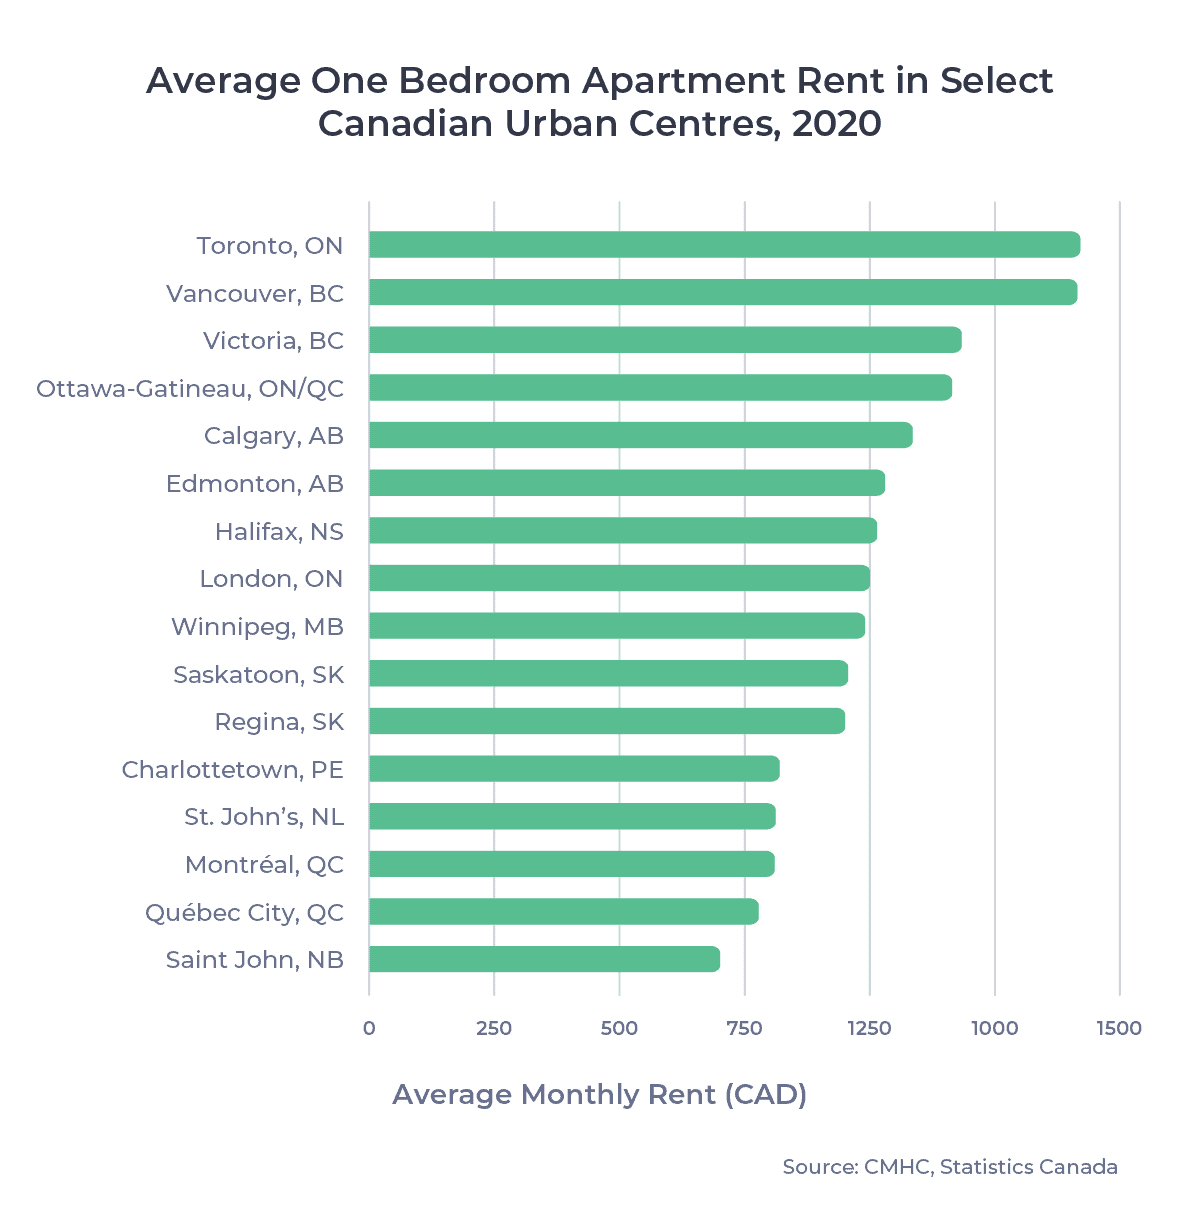 Bar chart of average one bedroom apartment rent in select Canadian urban centres, 2020